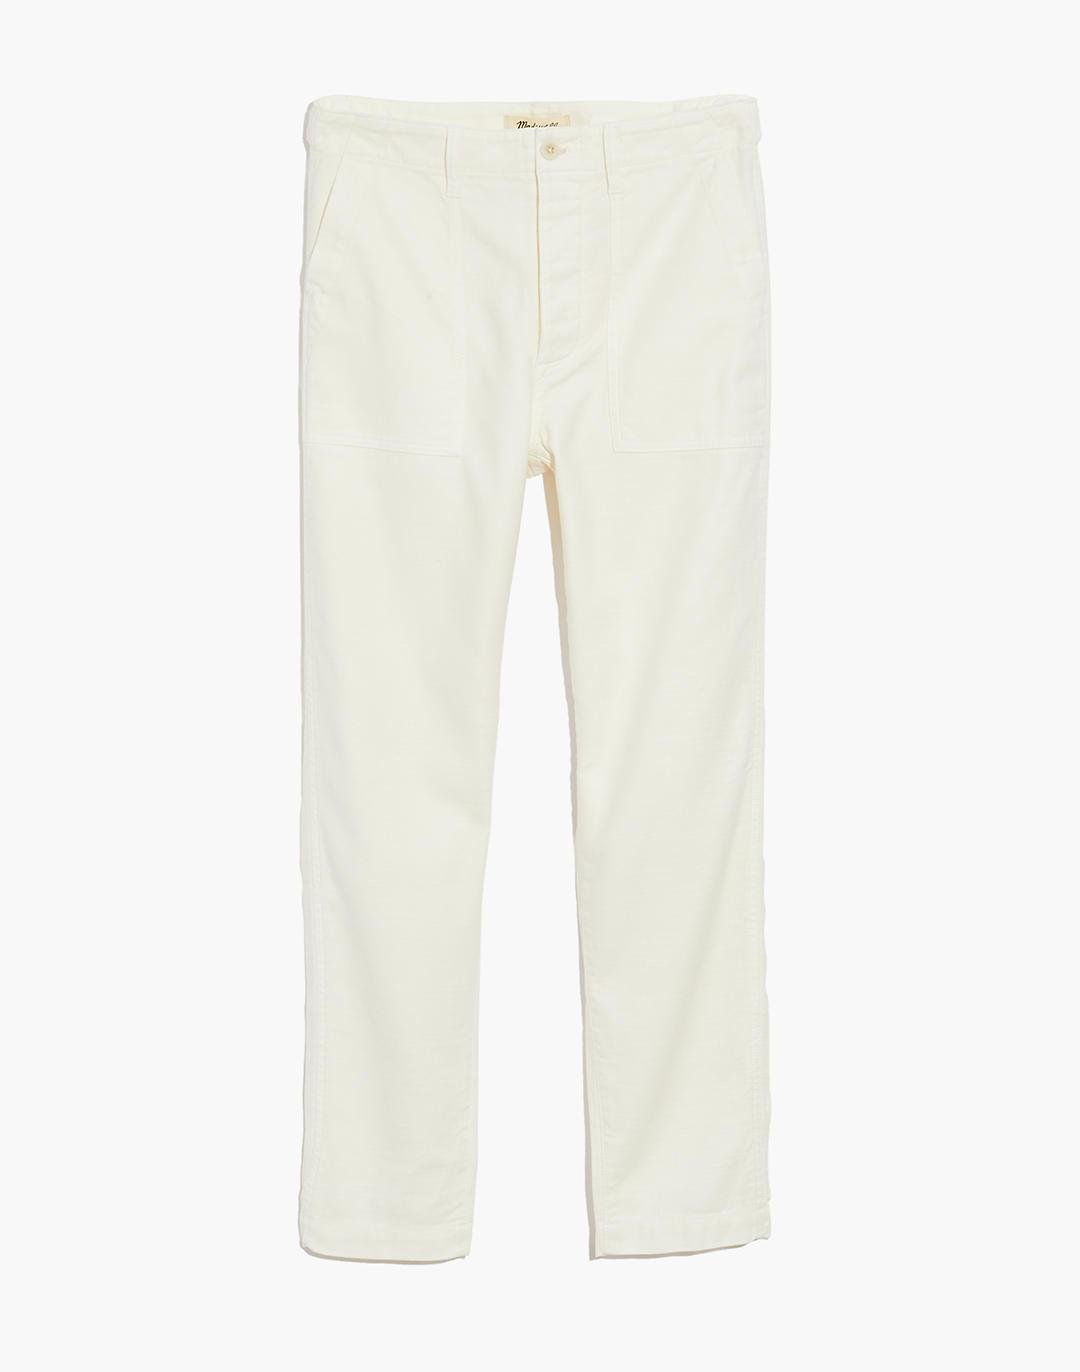 Griff Tapered Fatigue Pants 4